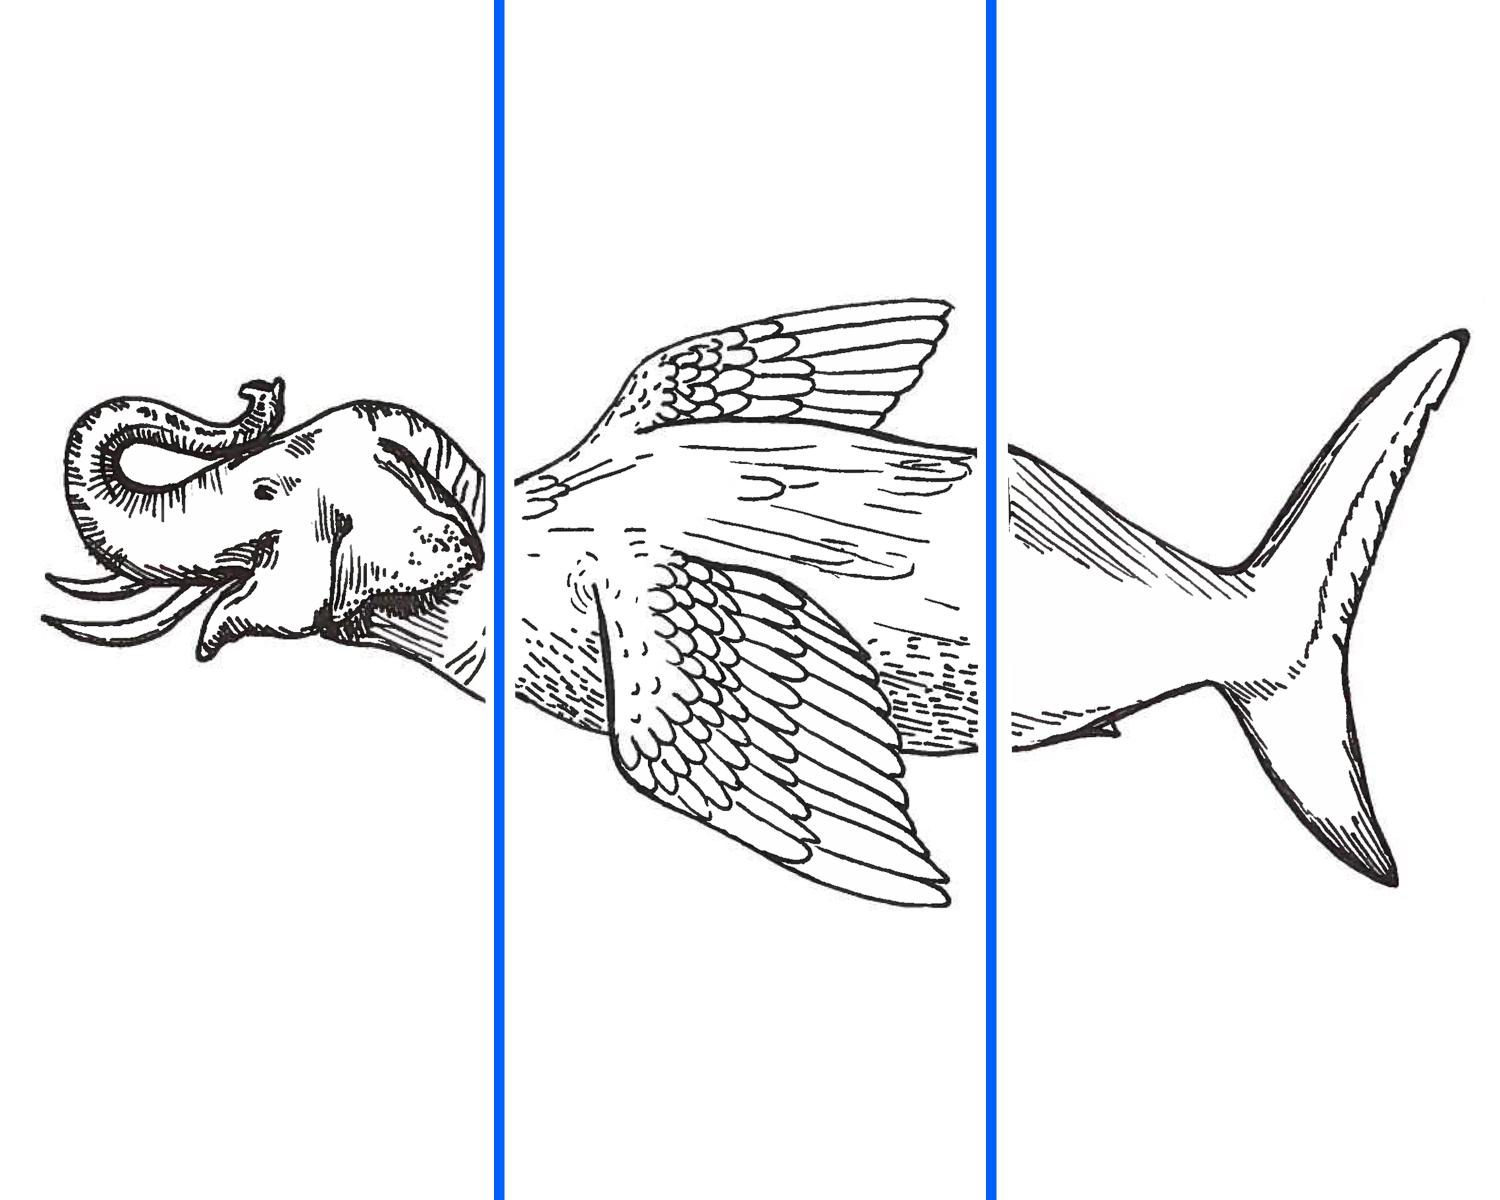 Sample drawing of the lesson plan's activity. An elephant head is attached to a bird body and a shark tail to create a new composite creature.